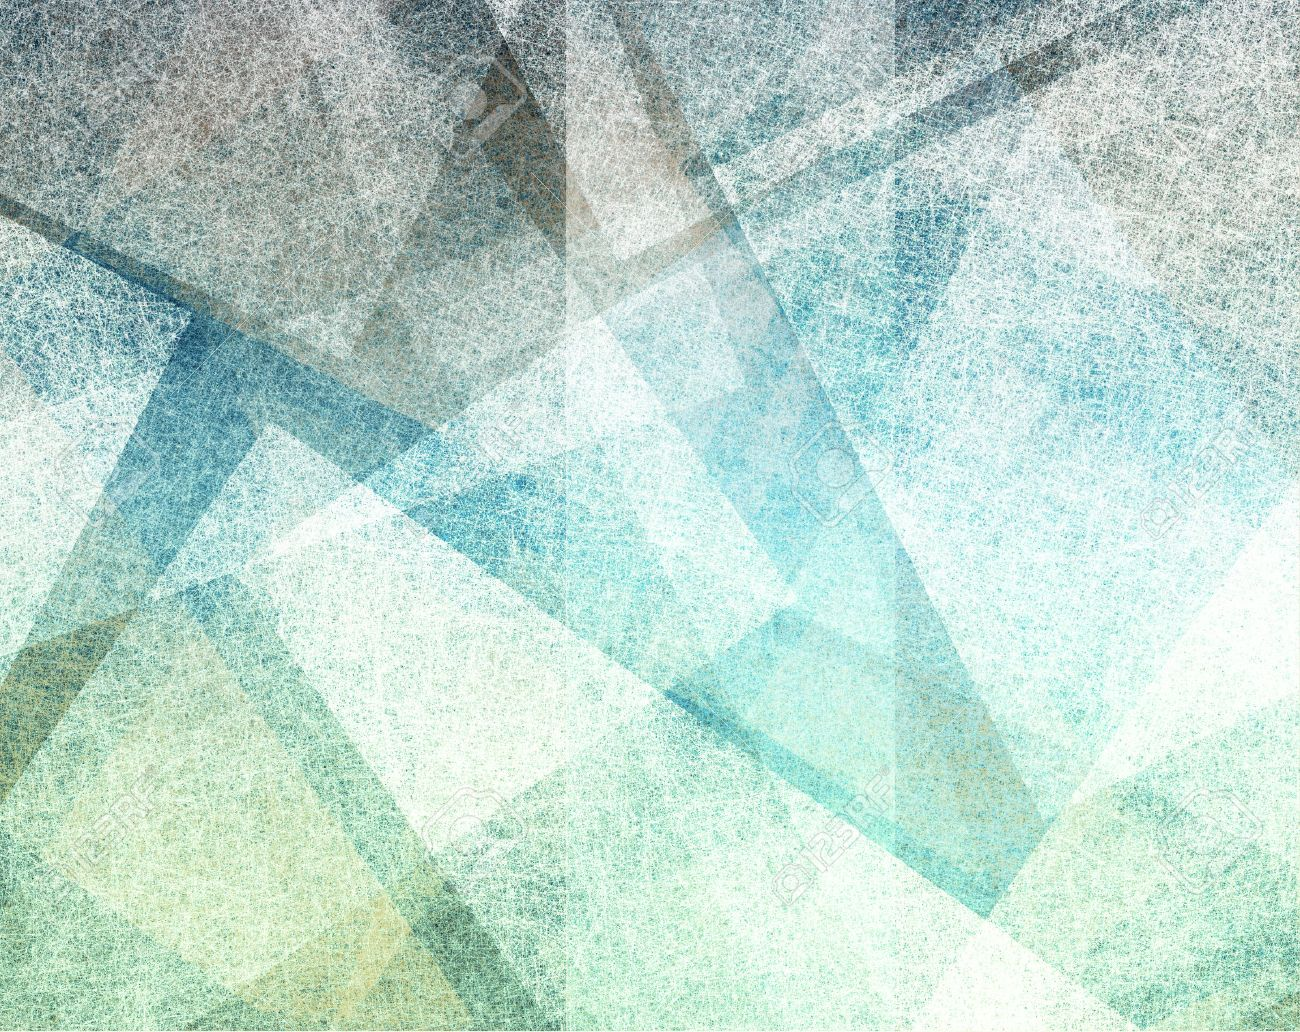 abstract paper geometric shapes background texture stock photo